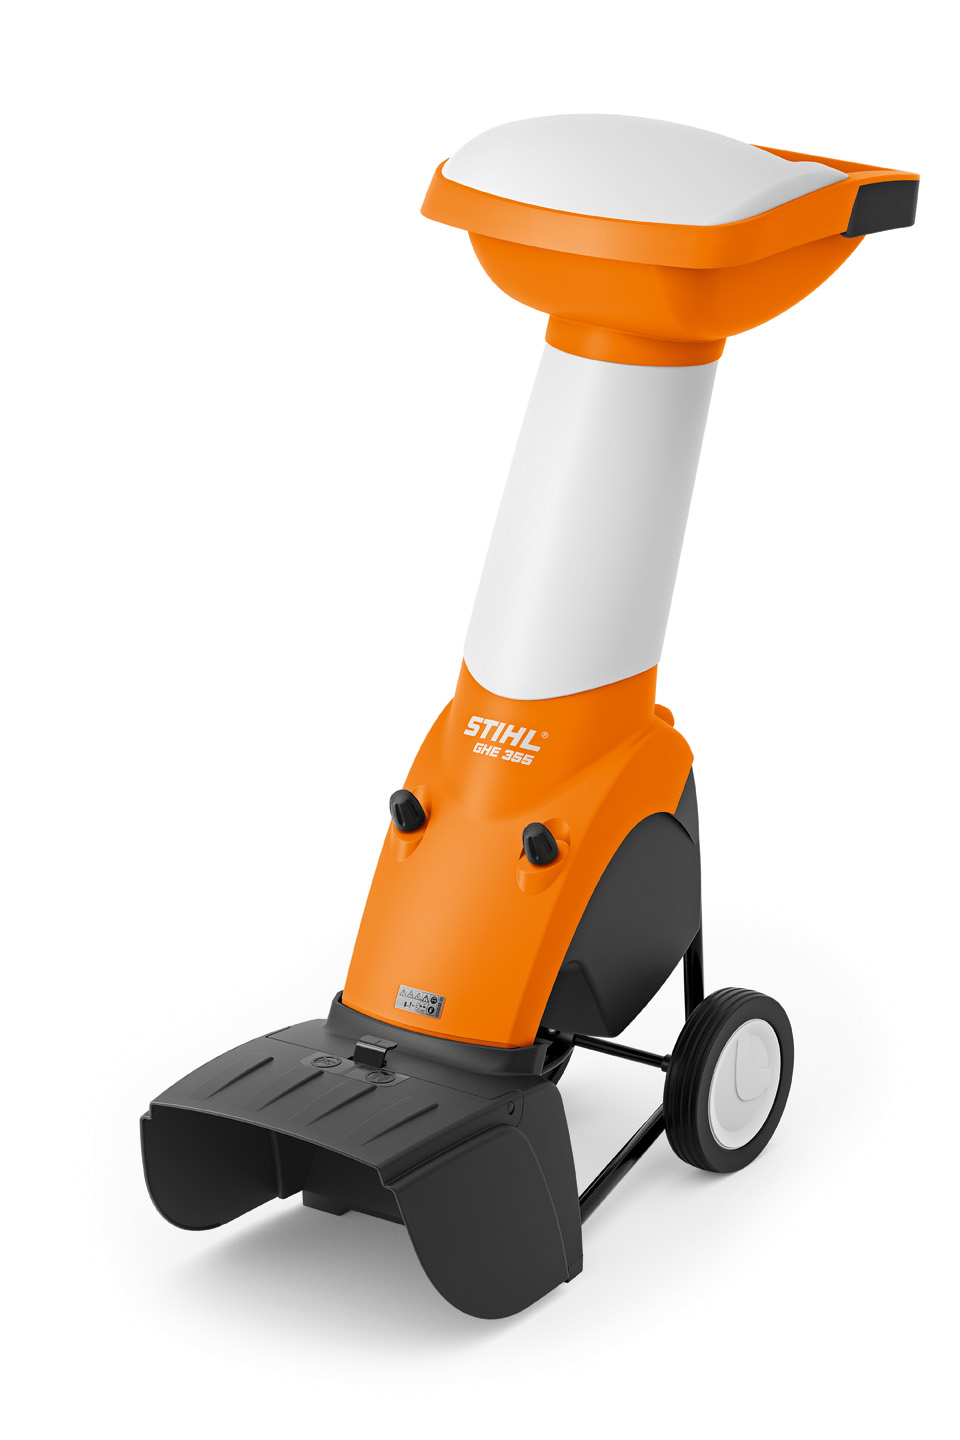 GHE 355 - POWERFUL ELECTRIC COMBINATION CHIPPER/SHREDDER